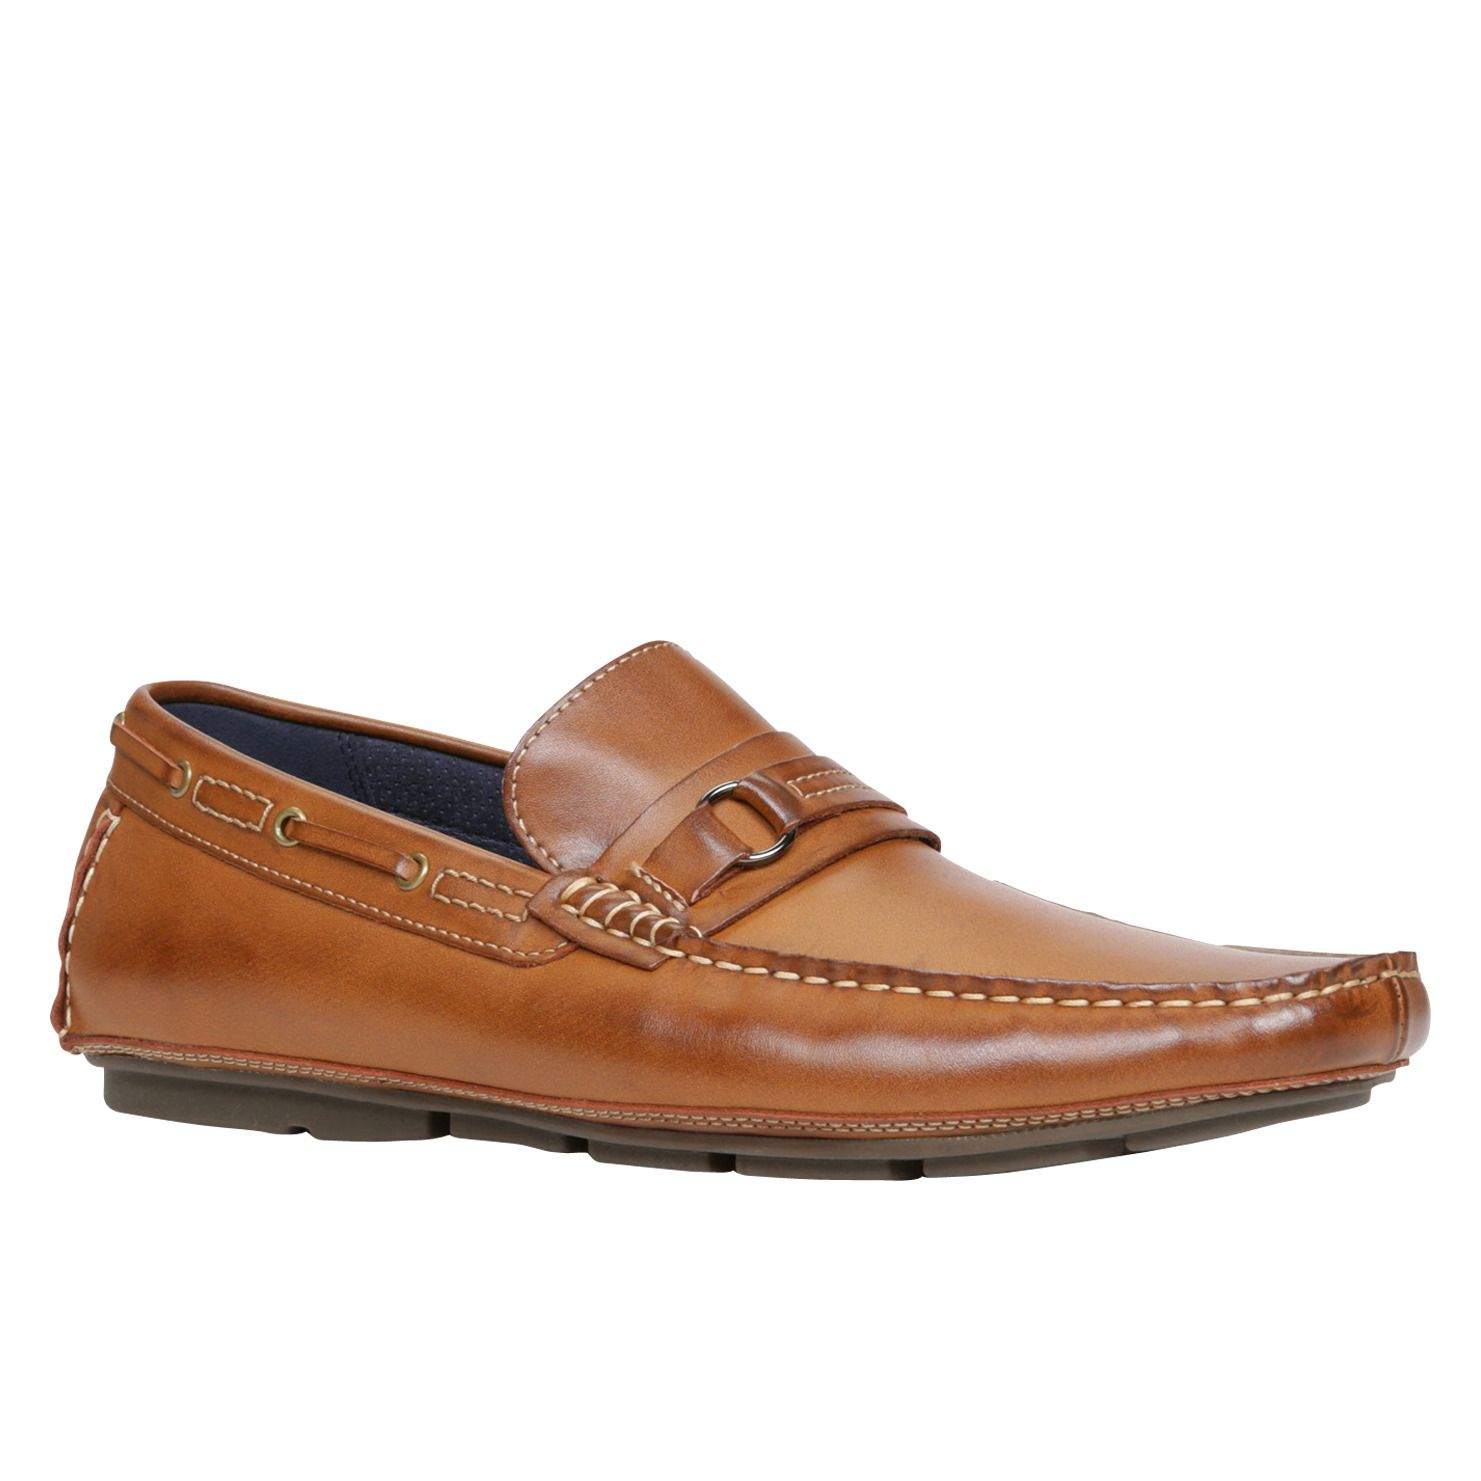 19c1558453e BROUGH - men s casual loafers shoes for sale at ALDO Shoes.